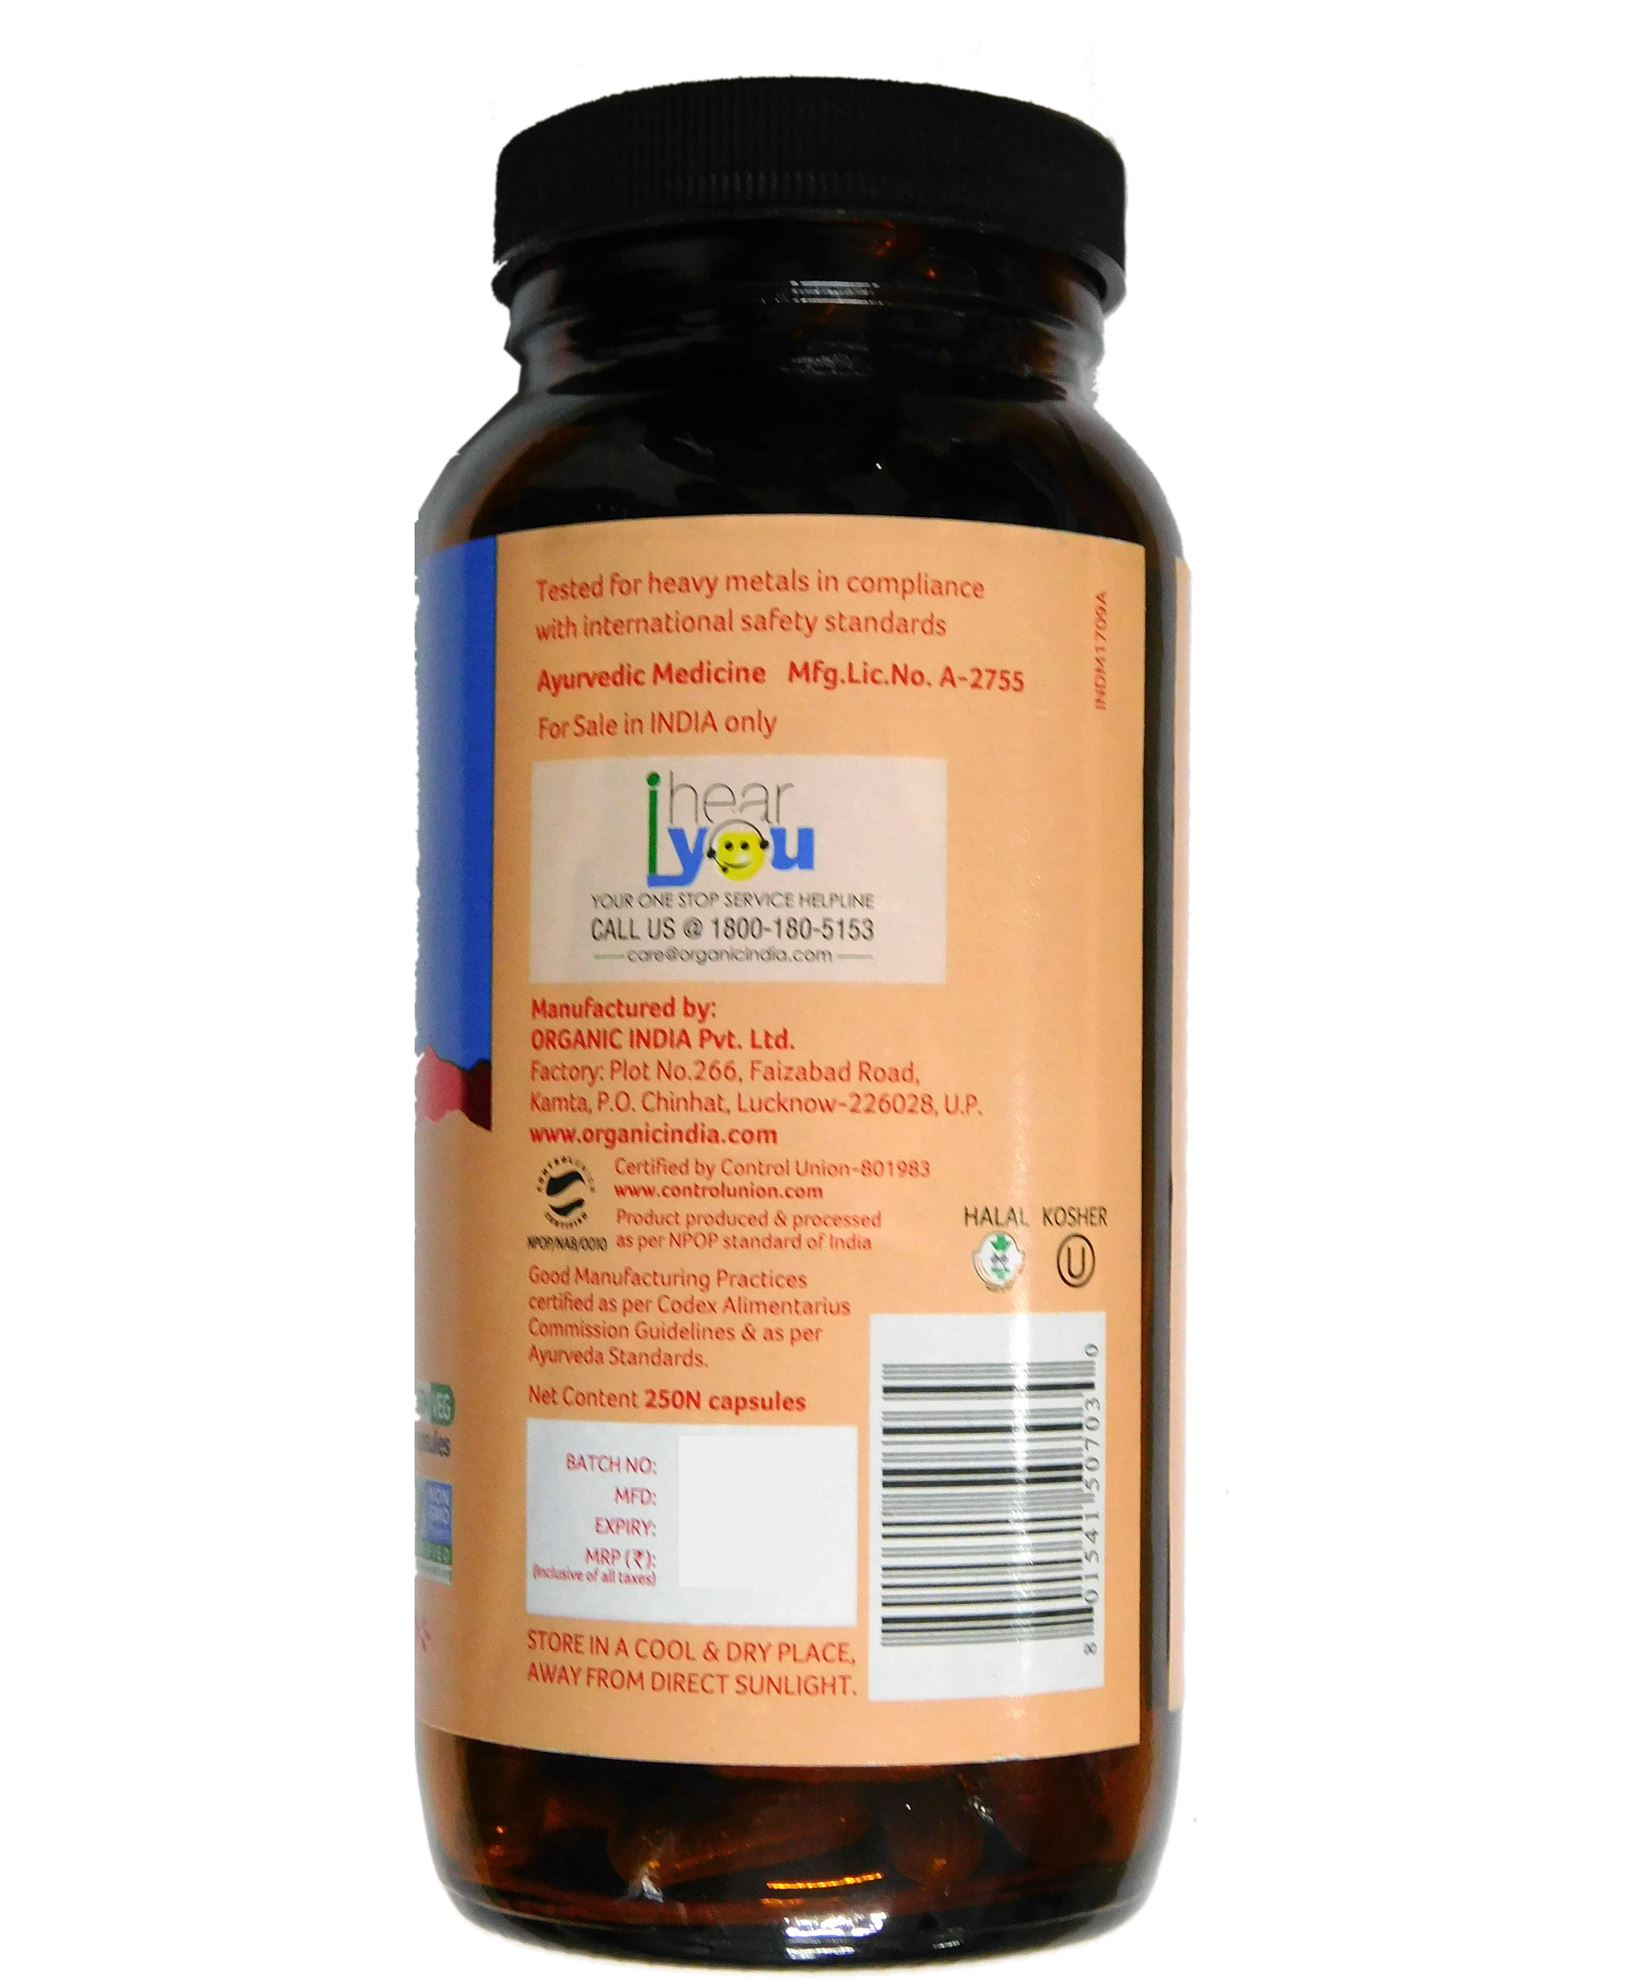 Picture of Organic India- Vitality 250 Capsules